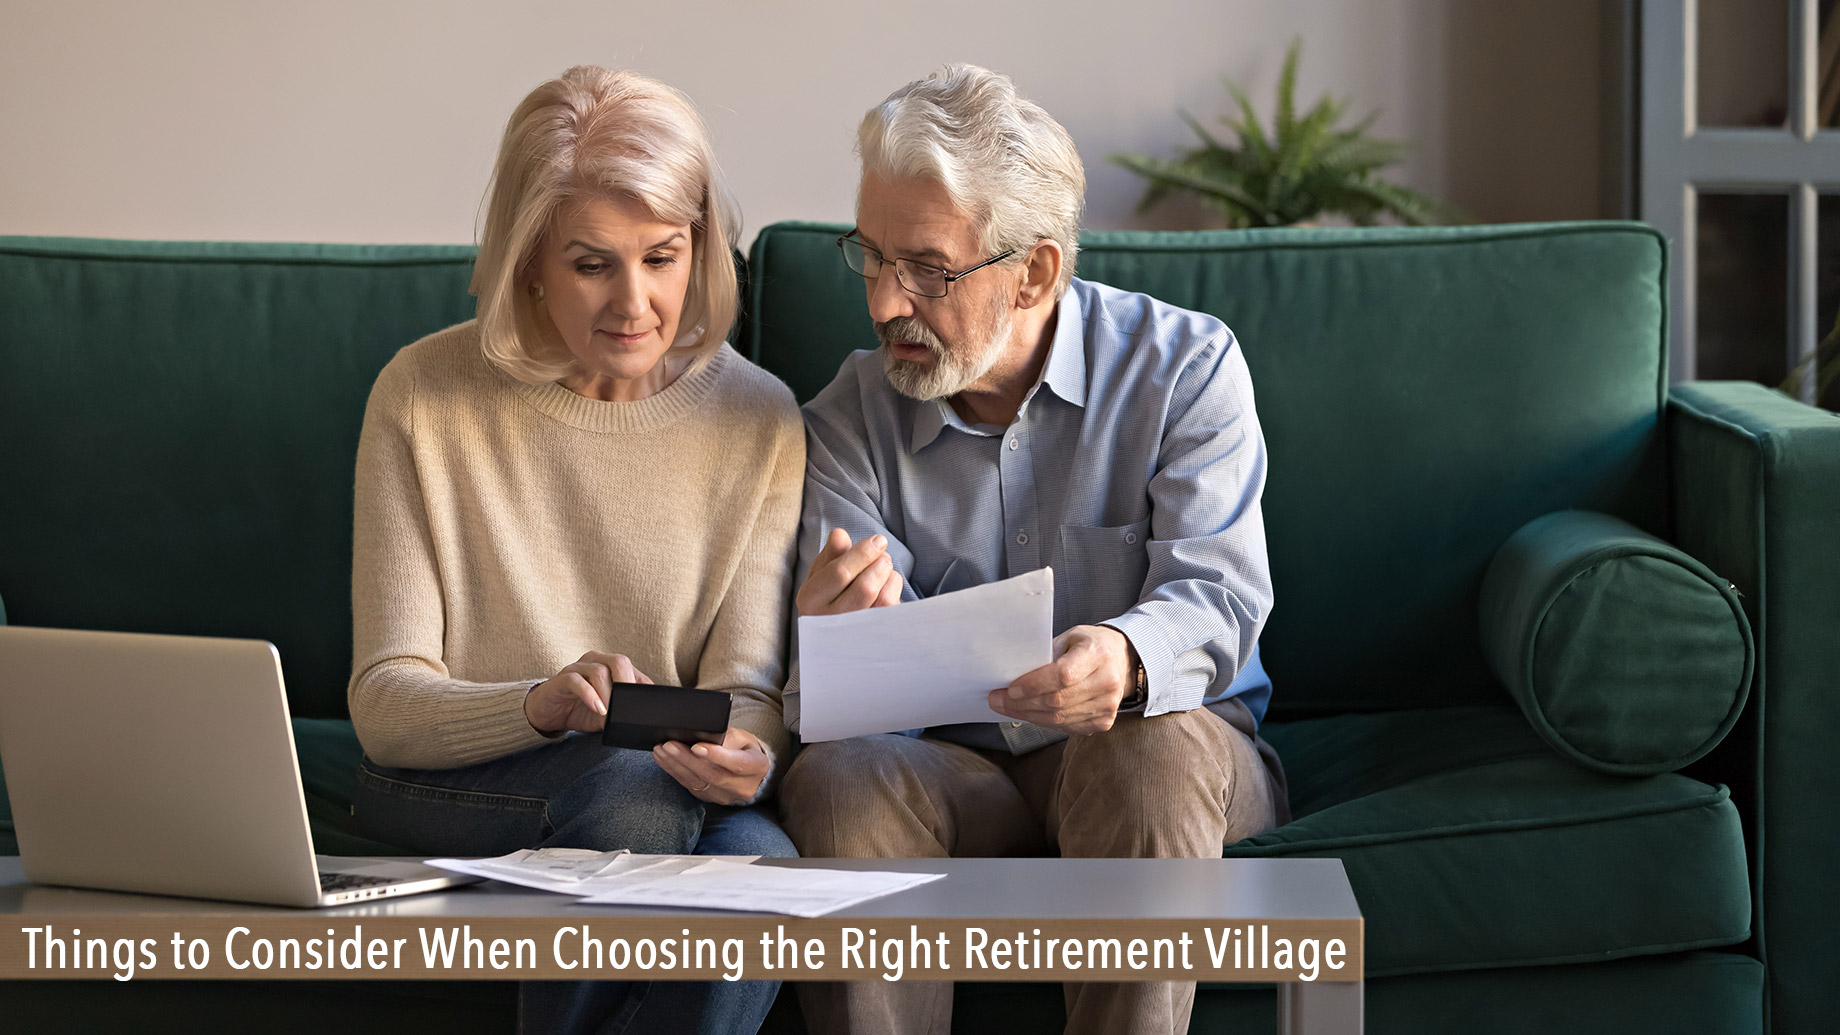 Things to Consider When Choosing the Right Retirement Village